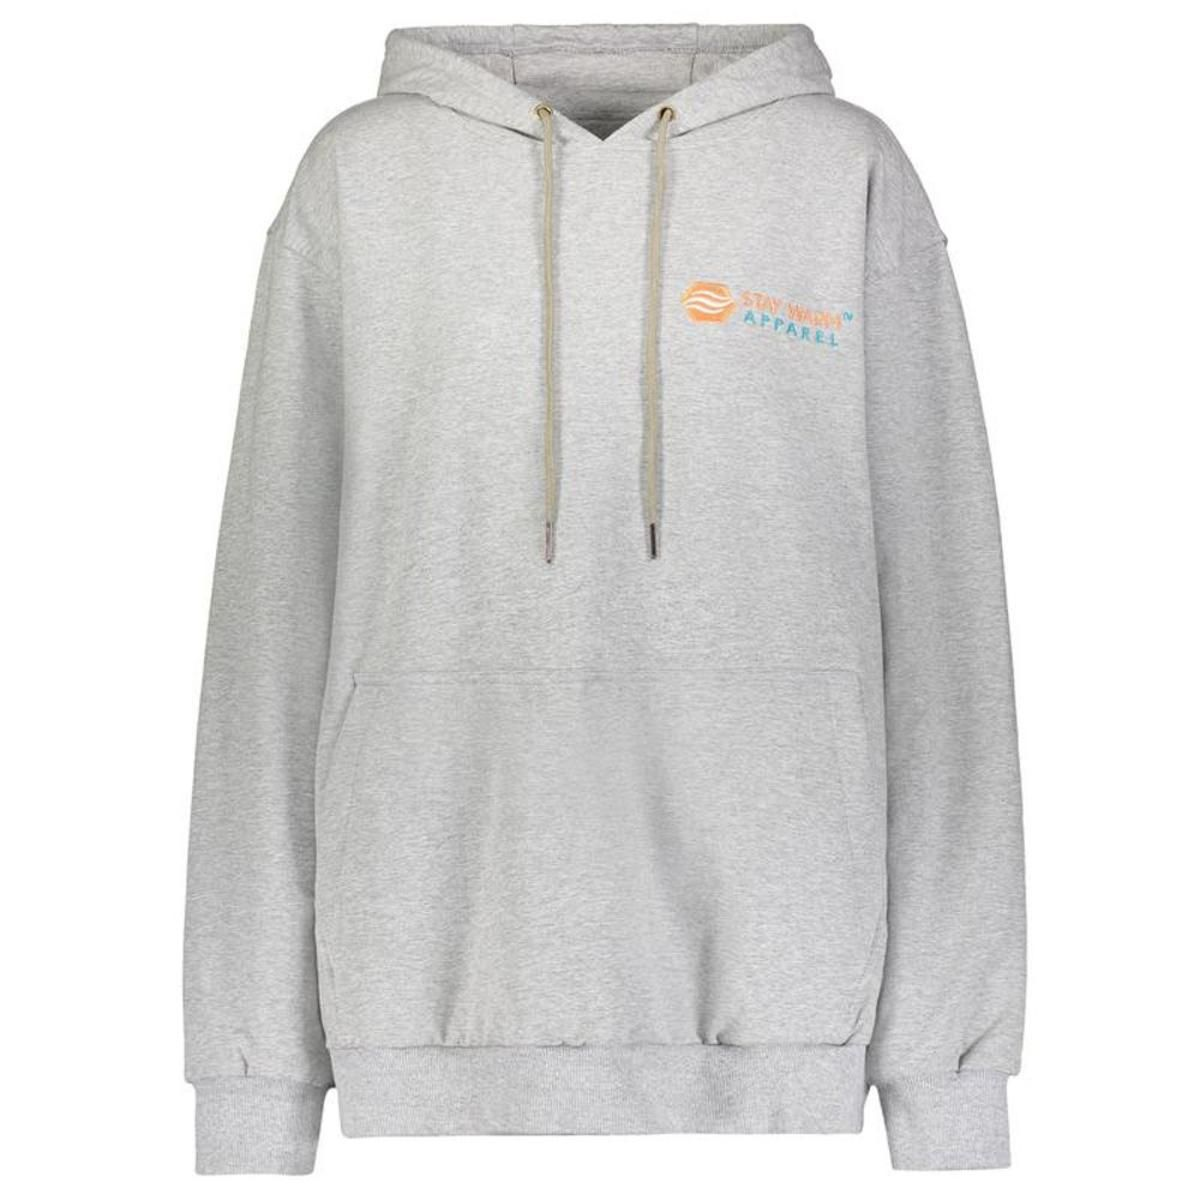 44c0303c7c Stay Warm Apparel Heated Hoodie with Rechargeable Battery - The Warming  Store